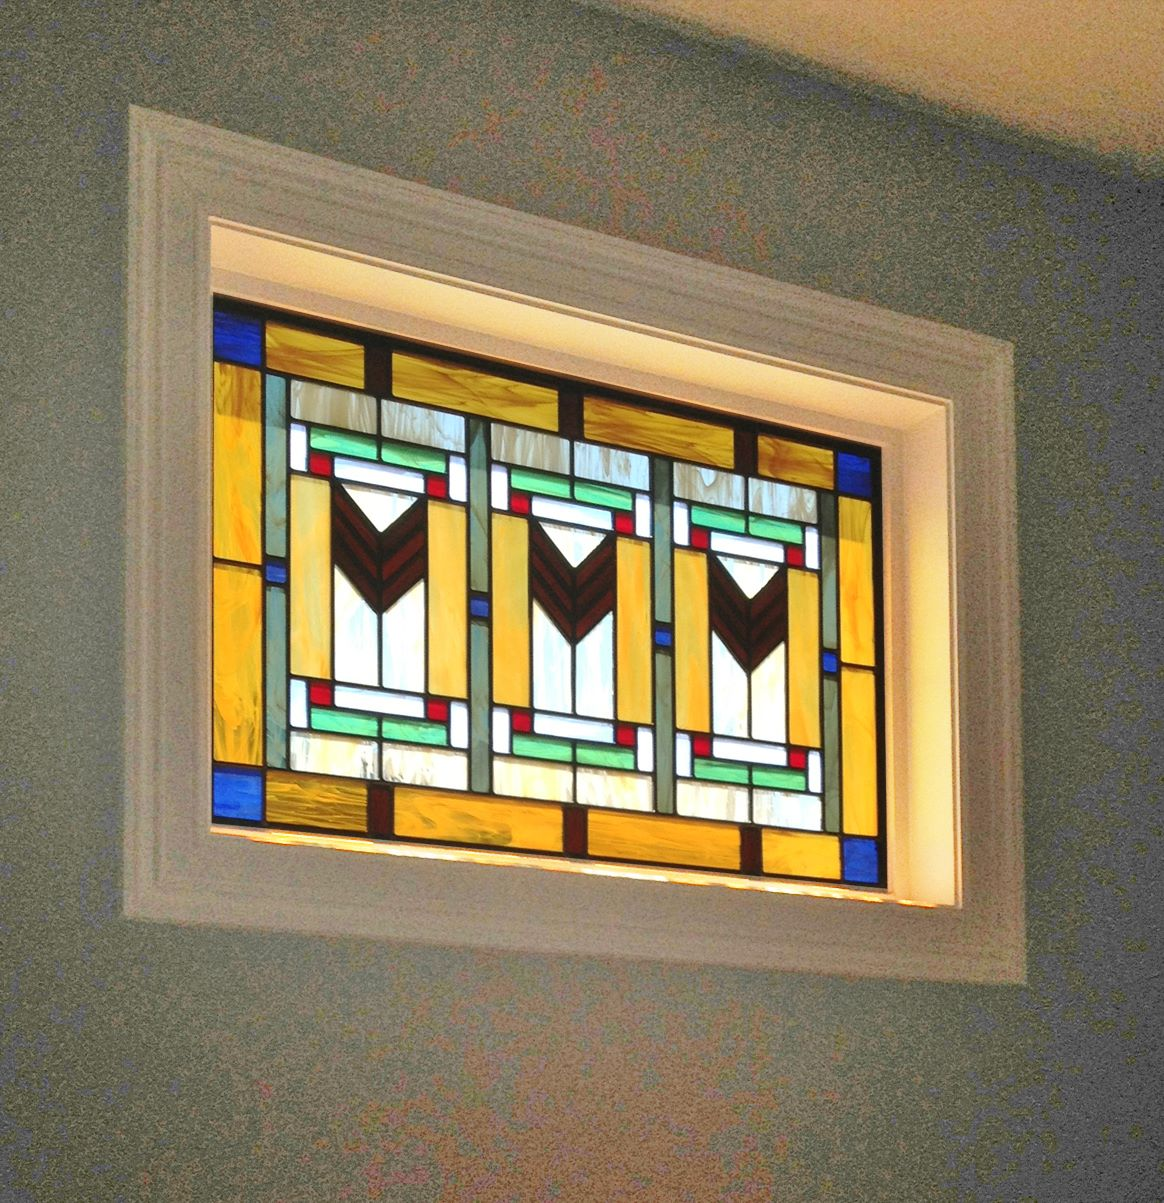 Call Today For An In Home Consultation To Learn More About How Art Deco Stained  Glass Windows Are A Great Addition To Your Fort Collins Home: (970) 613 0377